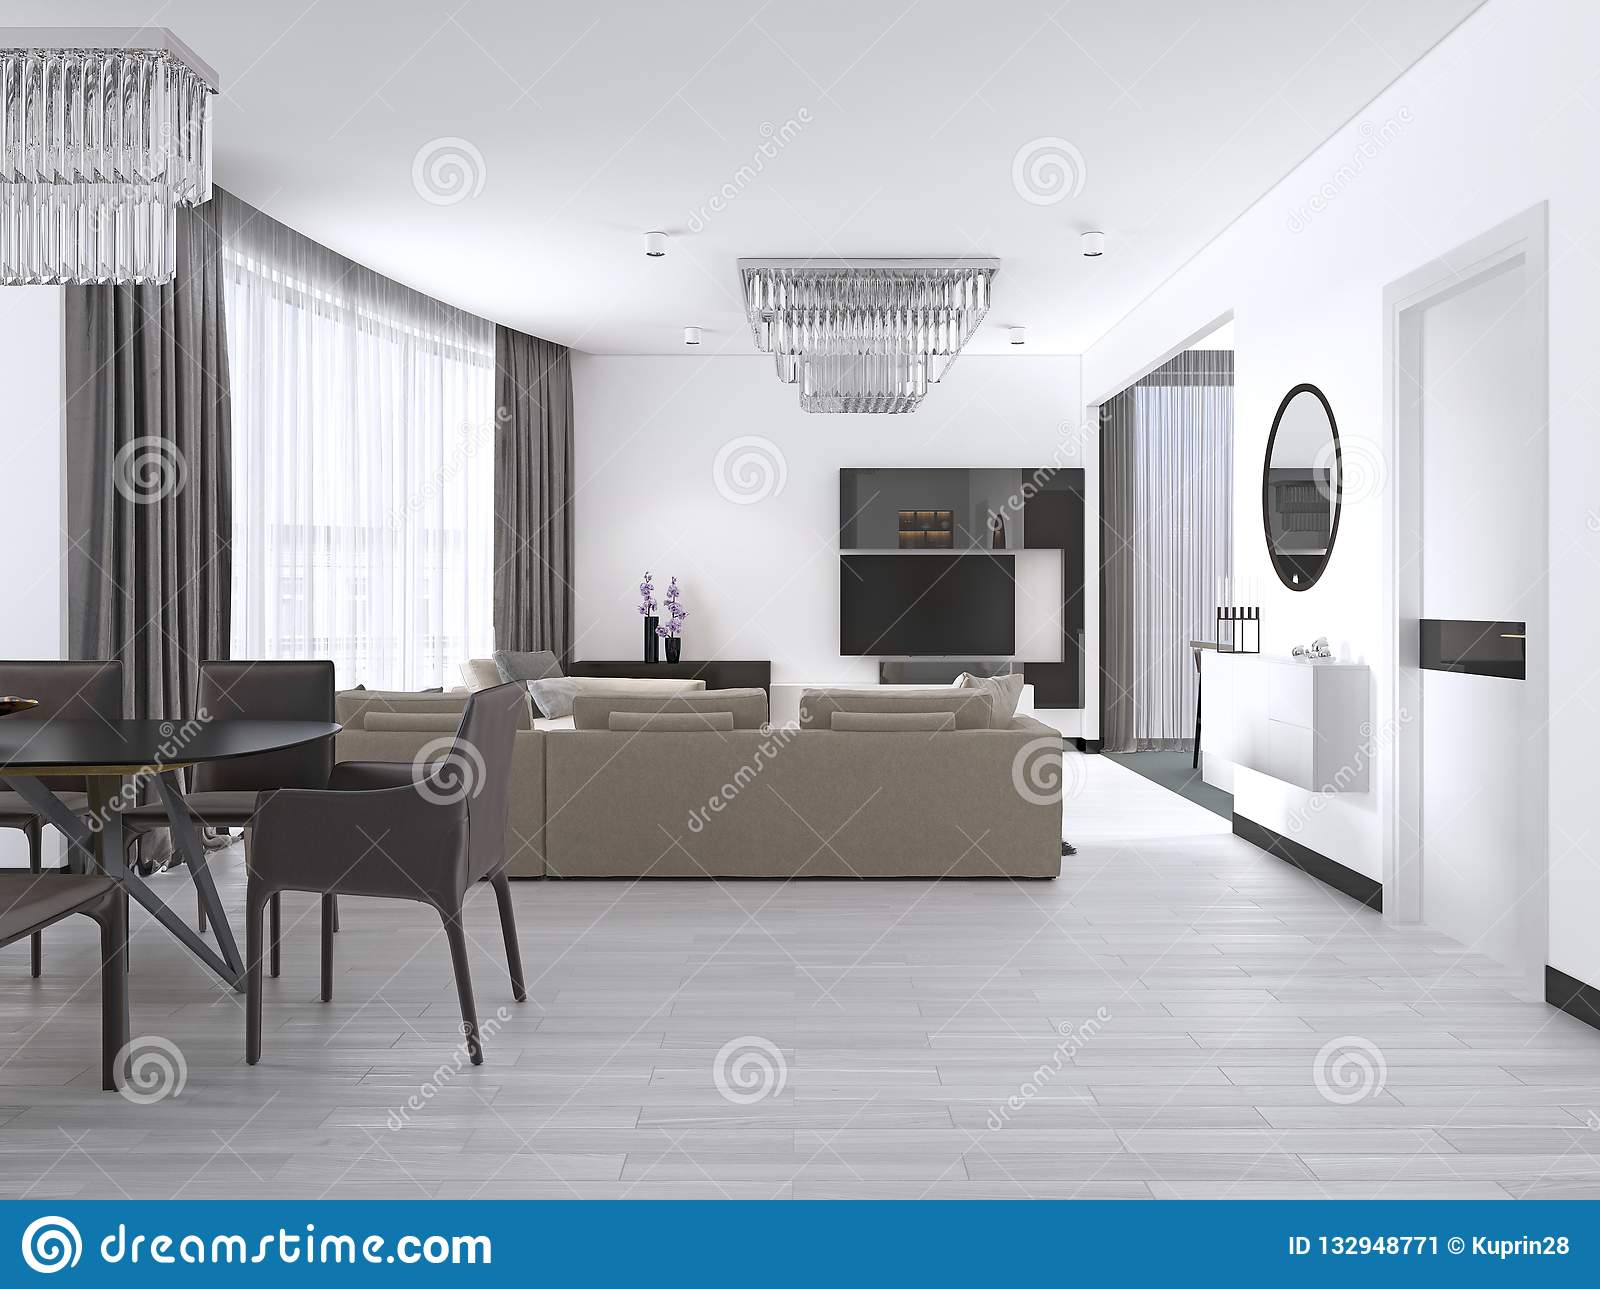 Interior Design Living Room With A Large Corner Sofa And A Tv Unit